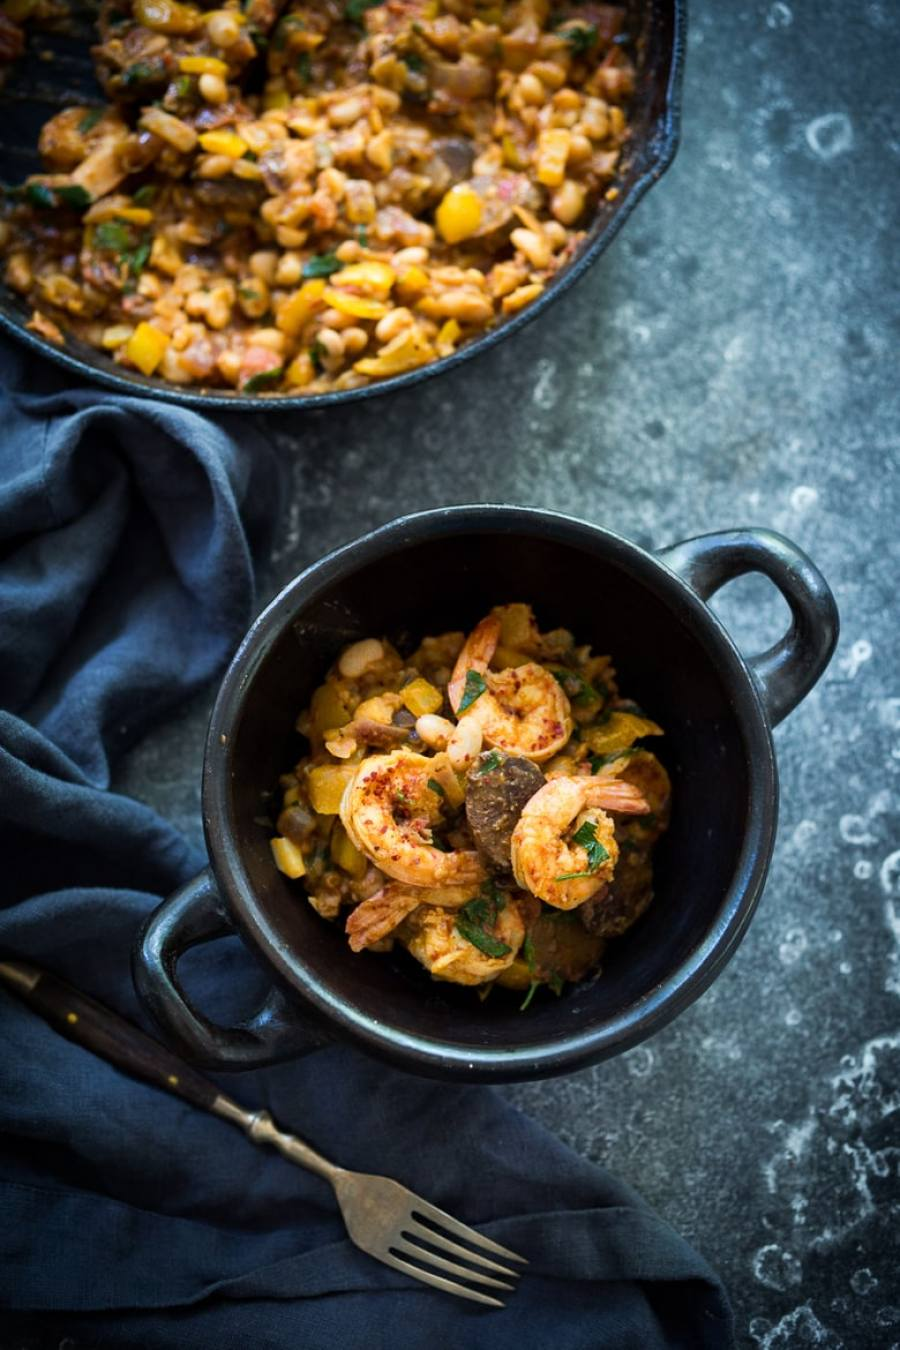 Spanish White bean, Shrimp and Sausage Skillet- a simple, healthy & flavorful, one-pan meal that can be on the table in 20 minutes!   www.feastingathome.com